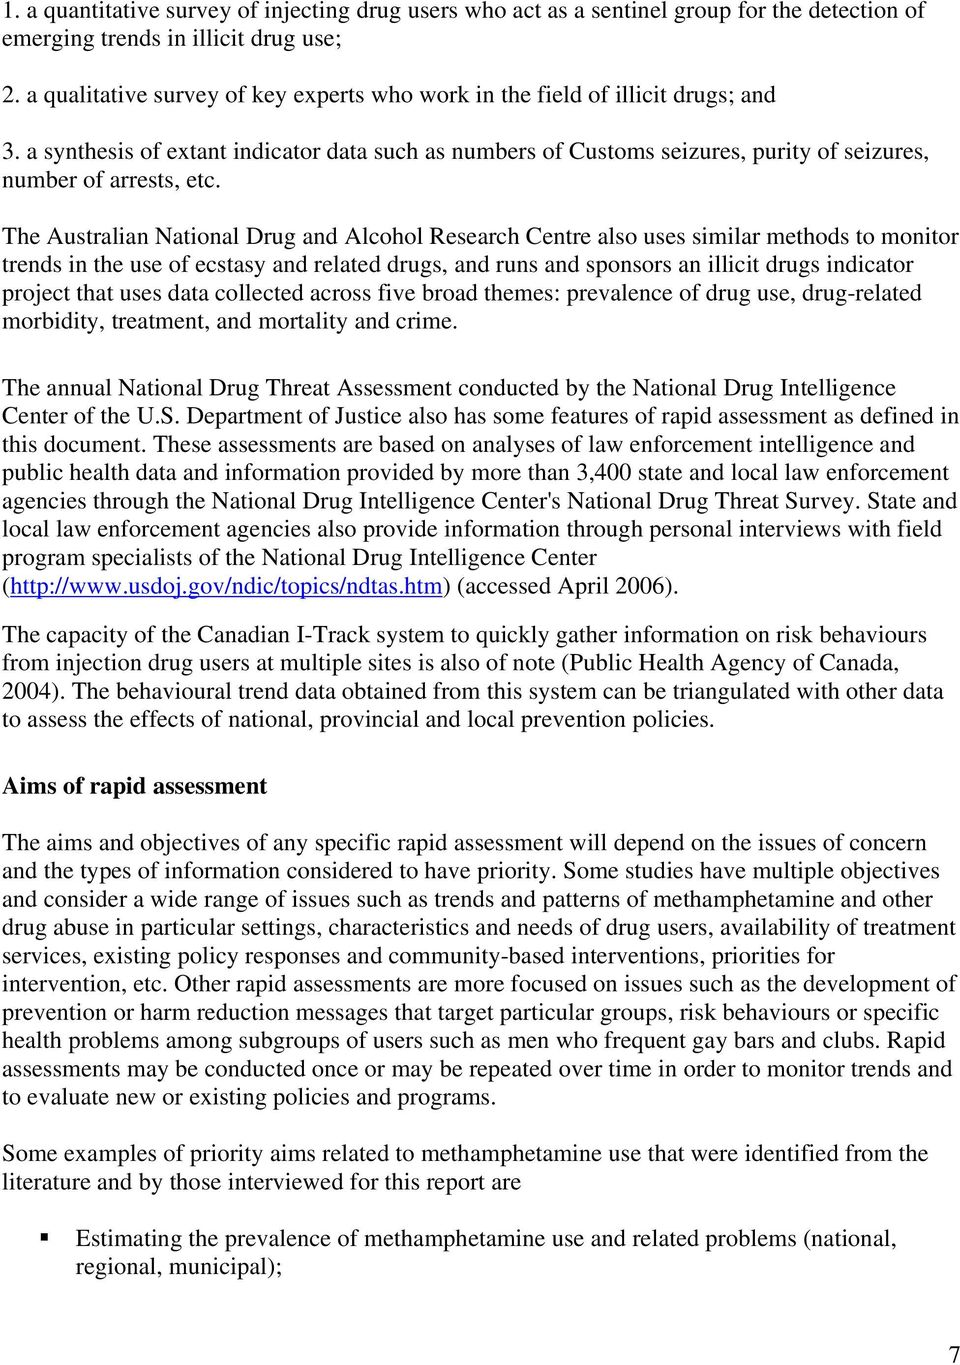 The Australian National Drug and Alcohol Research Centre also uses similar methods to monitor trends in the use of ecstasy and related drugs, and runs and sponsors an illicit drugs indicator project